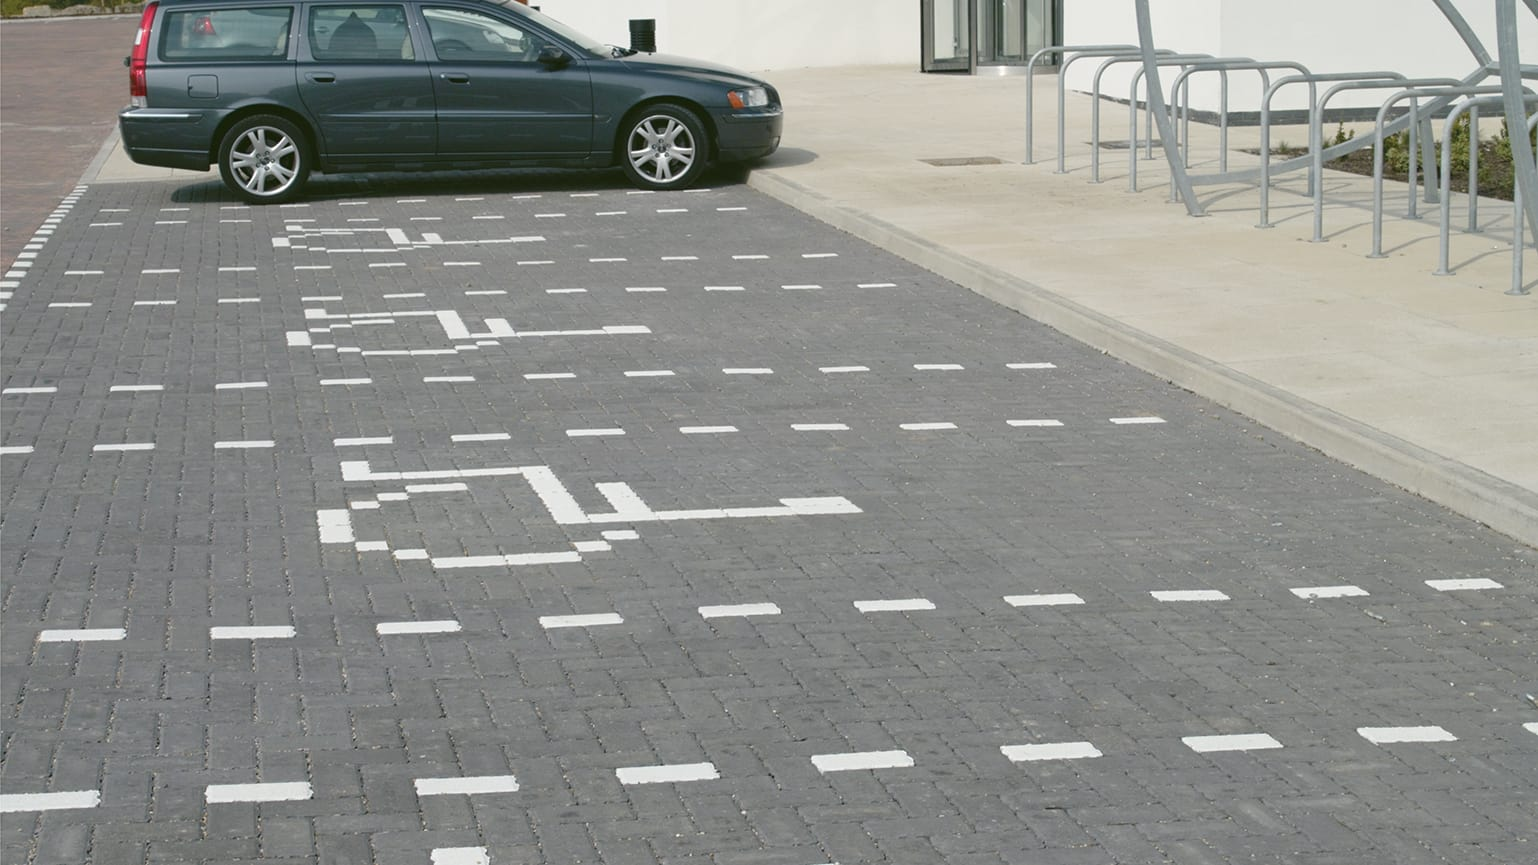 White marker blocks used to outline car spaces inside car park.